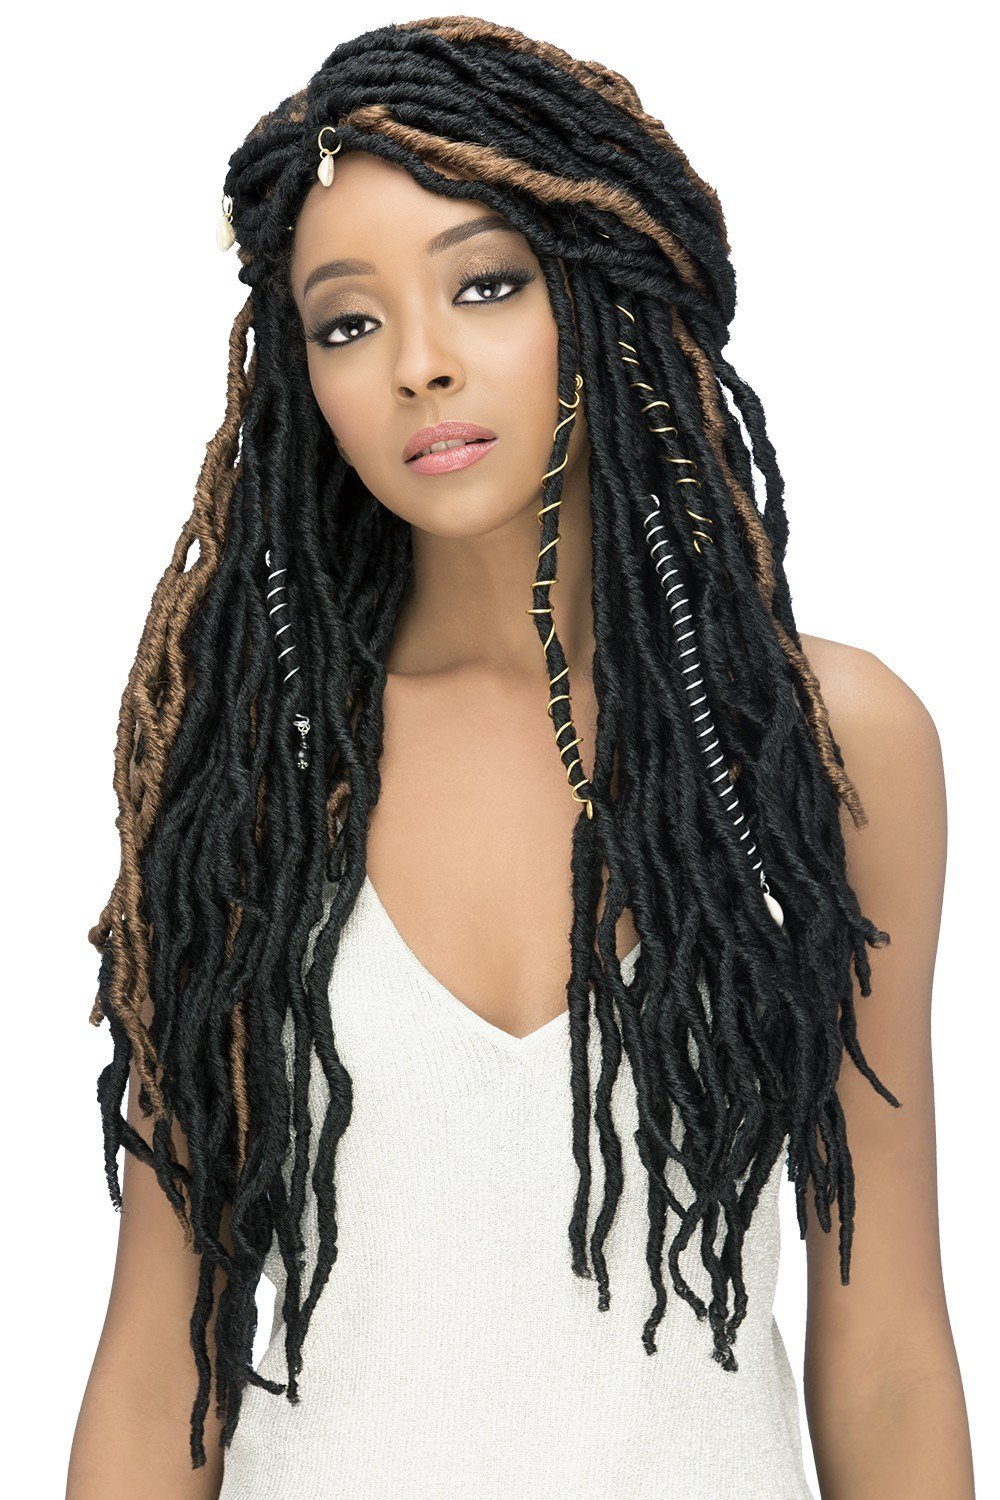 The Best Rasta Hairstyles With Braids Hairstyle Ideas Pictures